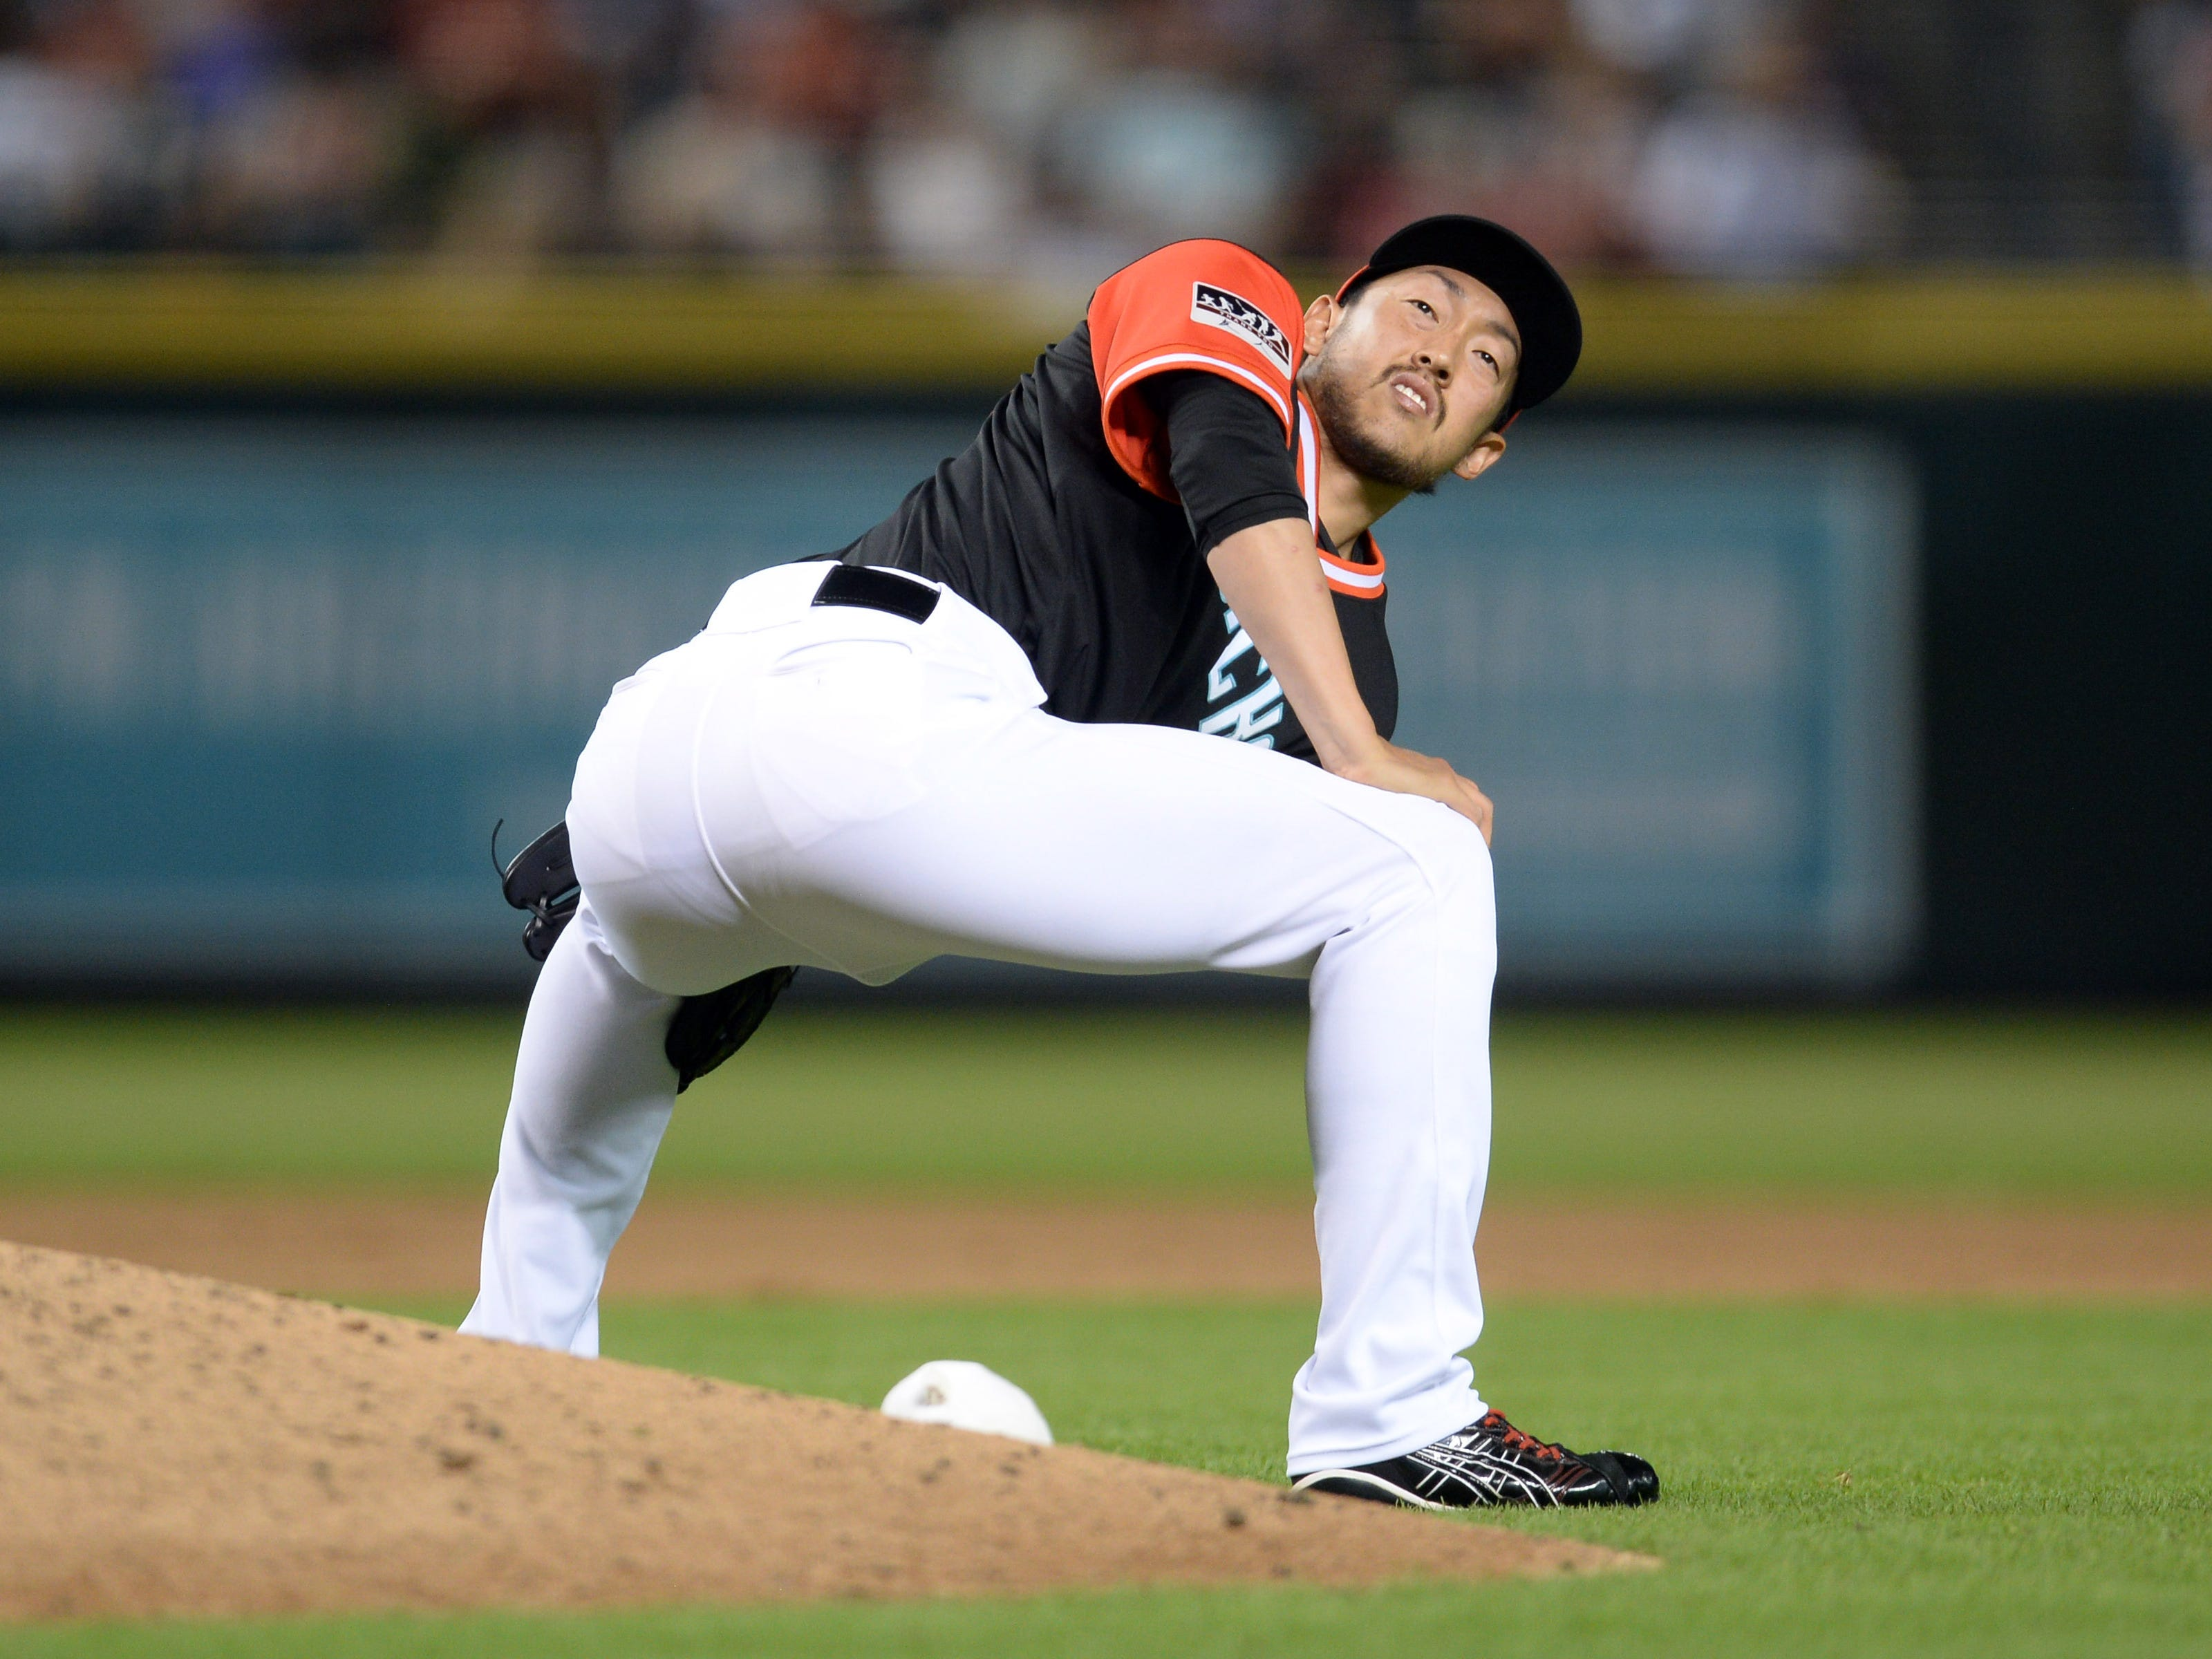 Aug 25, 2018; Phoenix, AZ, USA; Arizona Diamondbacks relief pitcher Yoshihisa Hirano (66) stretches against the Seattle Mariners during the eighth inning at Chase Field. Mandatory Credit: Joe Camporeale-USA TODAY Sports